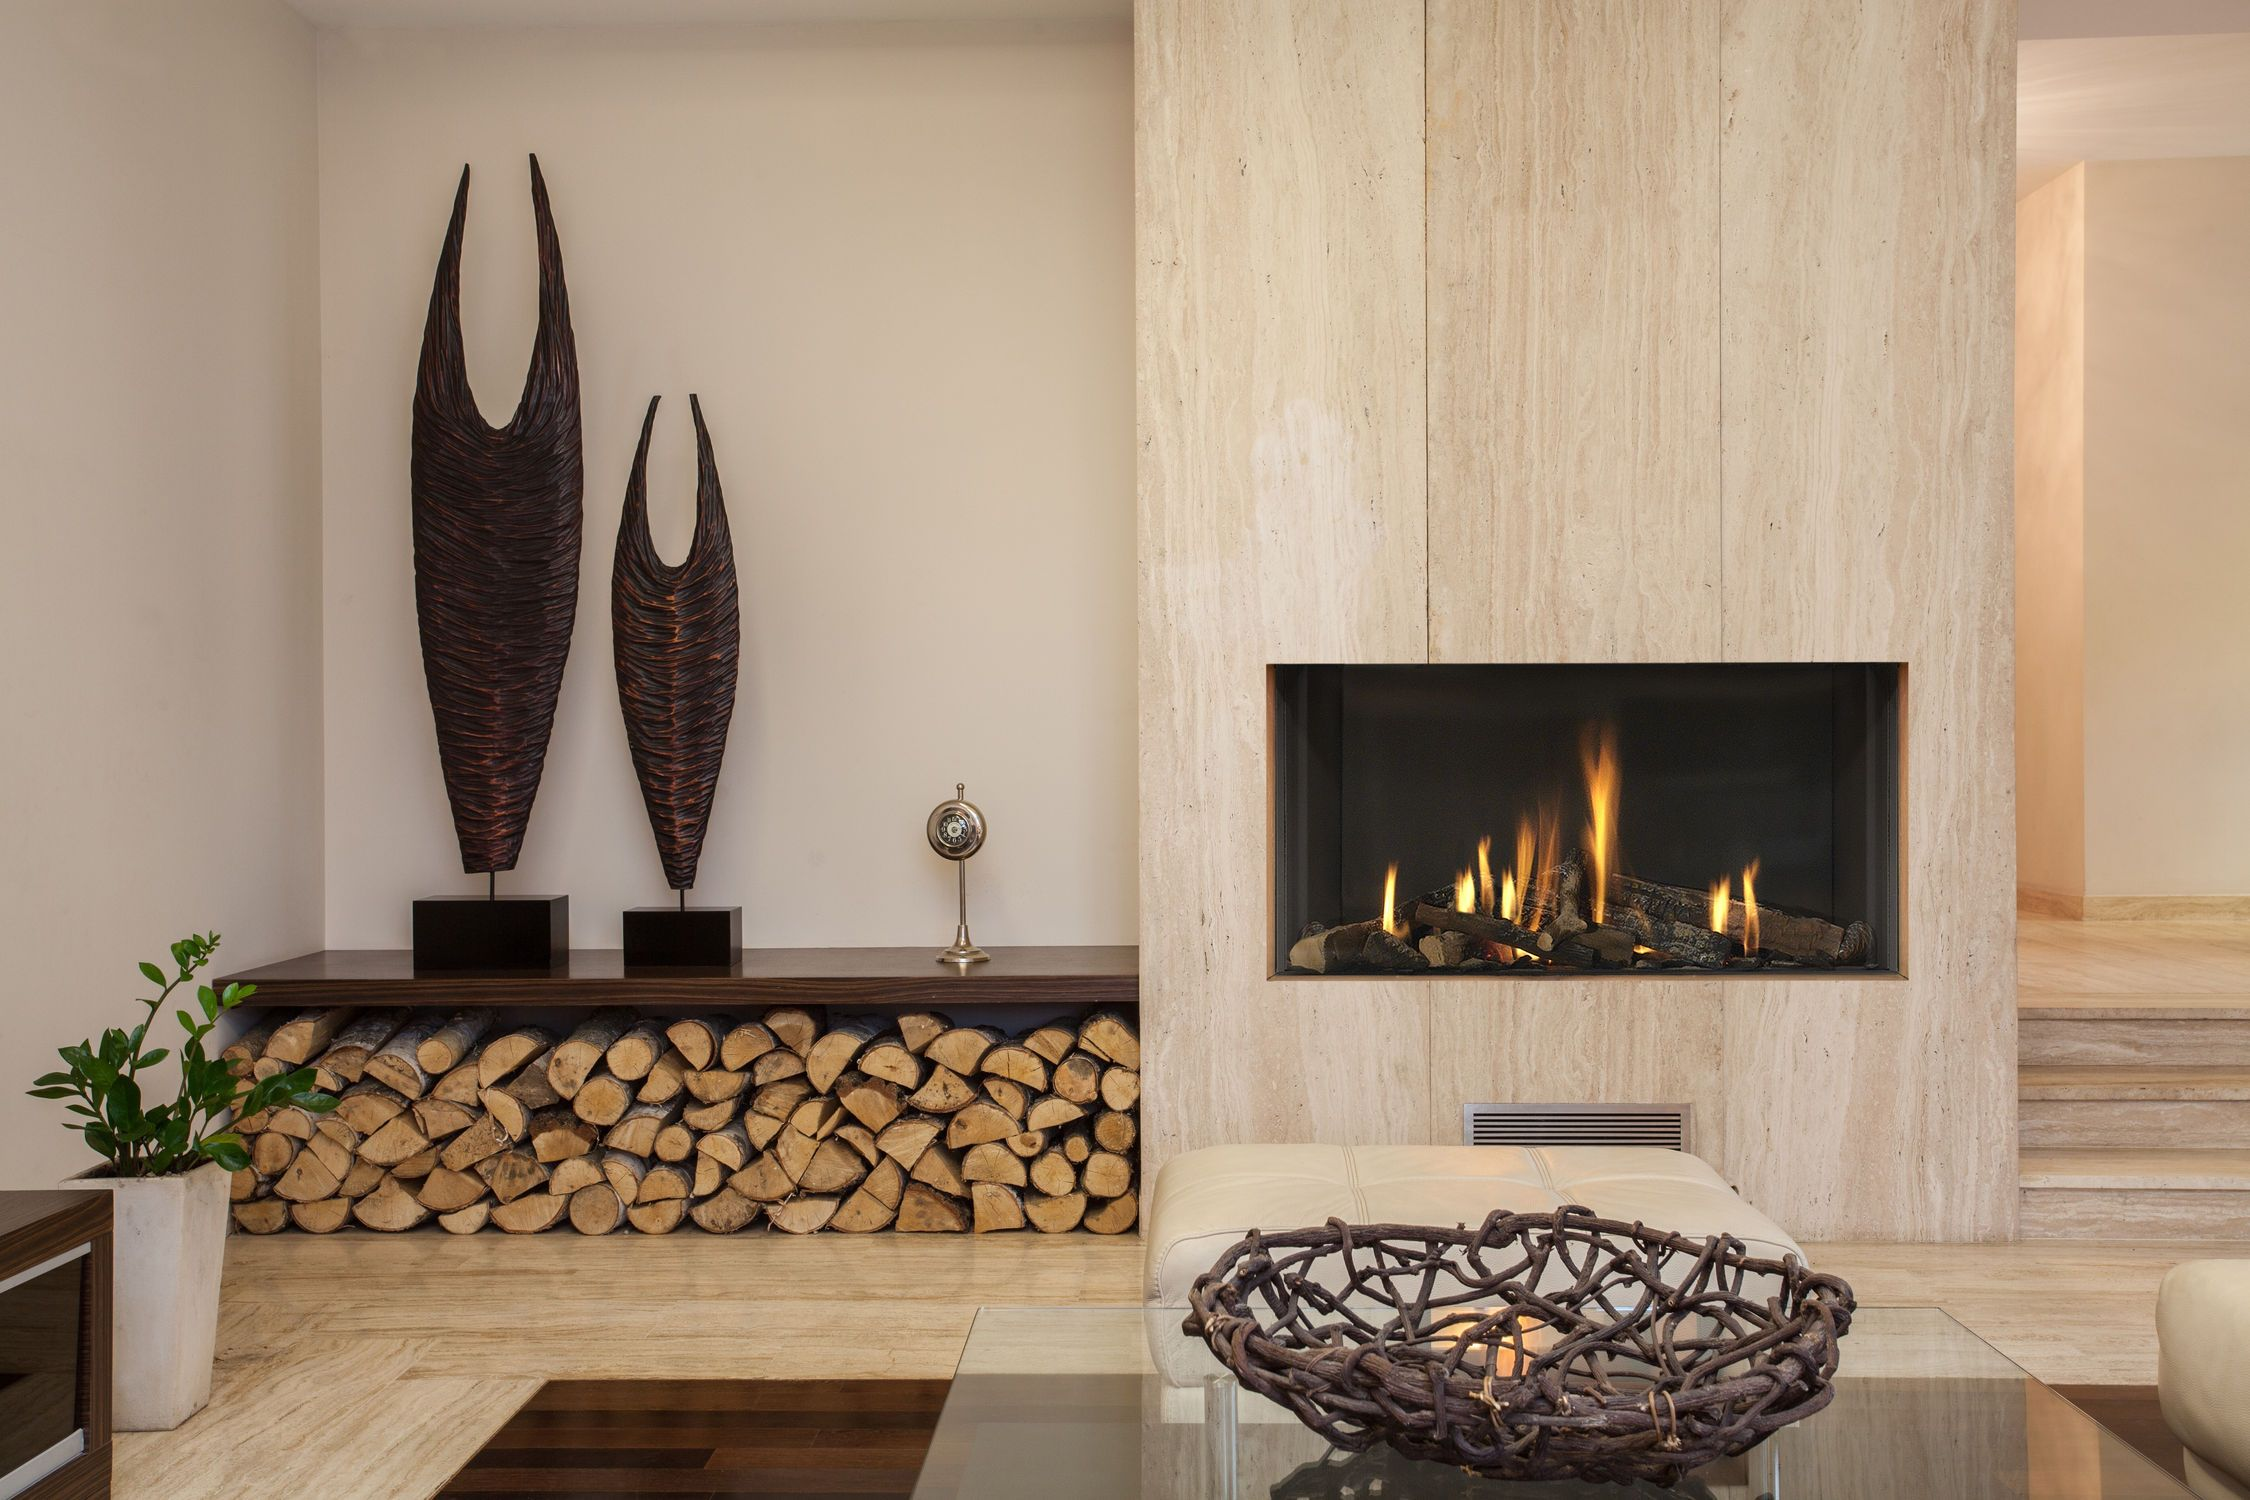 50 Modern Fireplace Ideas To Fall In Love With Contemporary Fireplace Designs Fireplace Modern Design Contemporary Fireplace